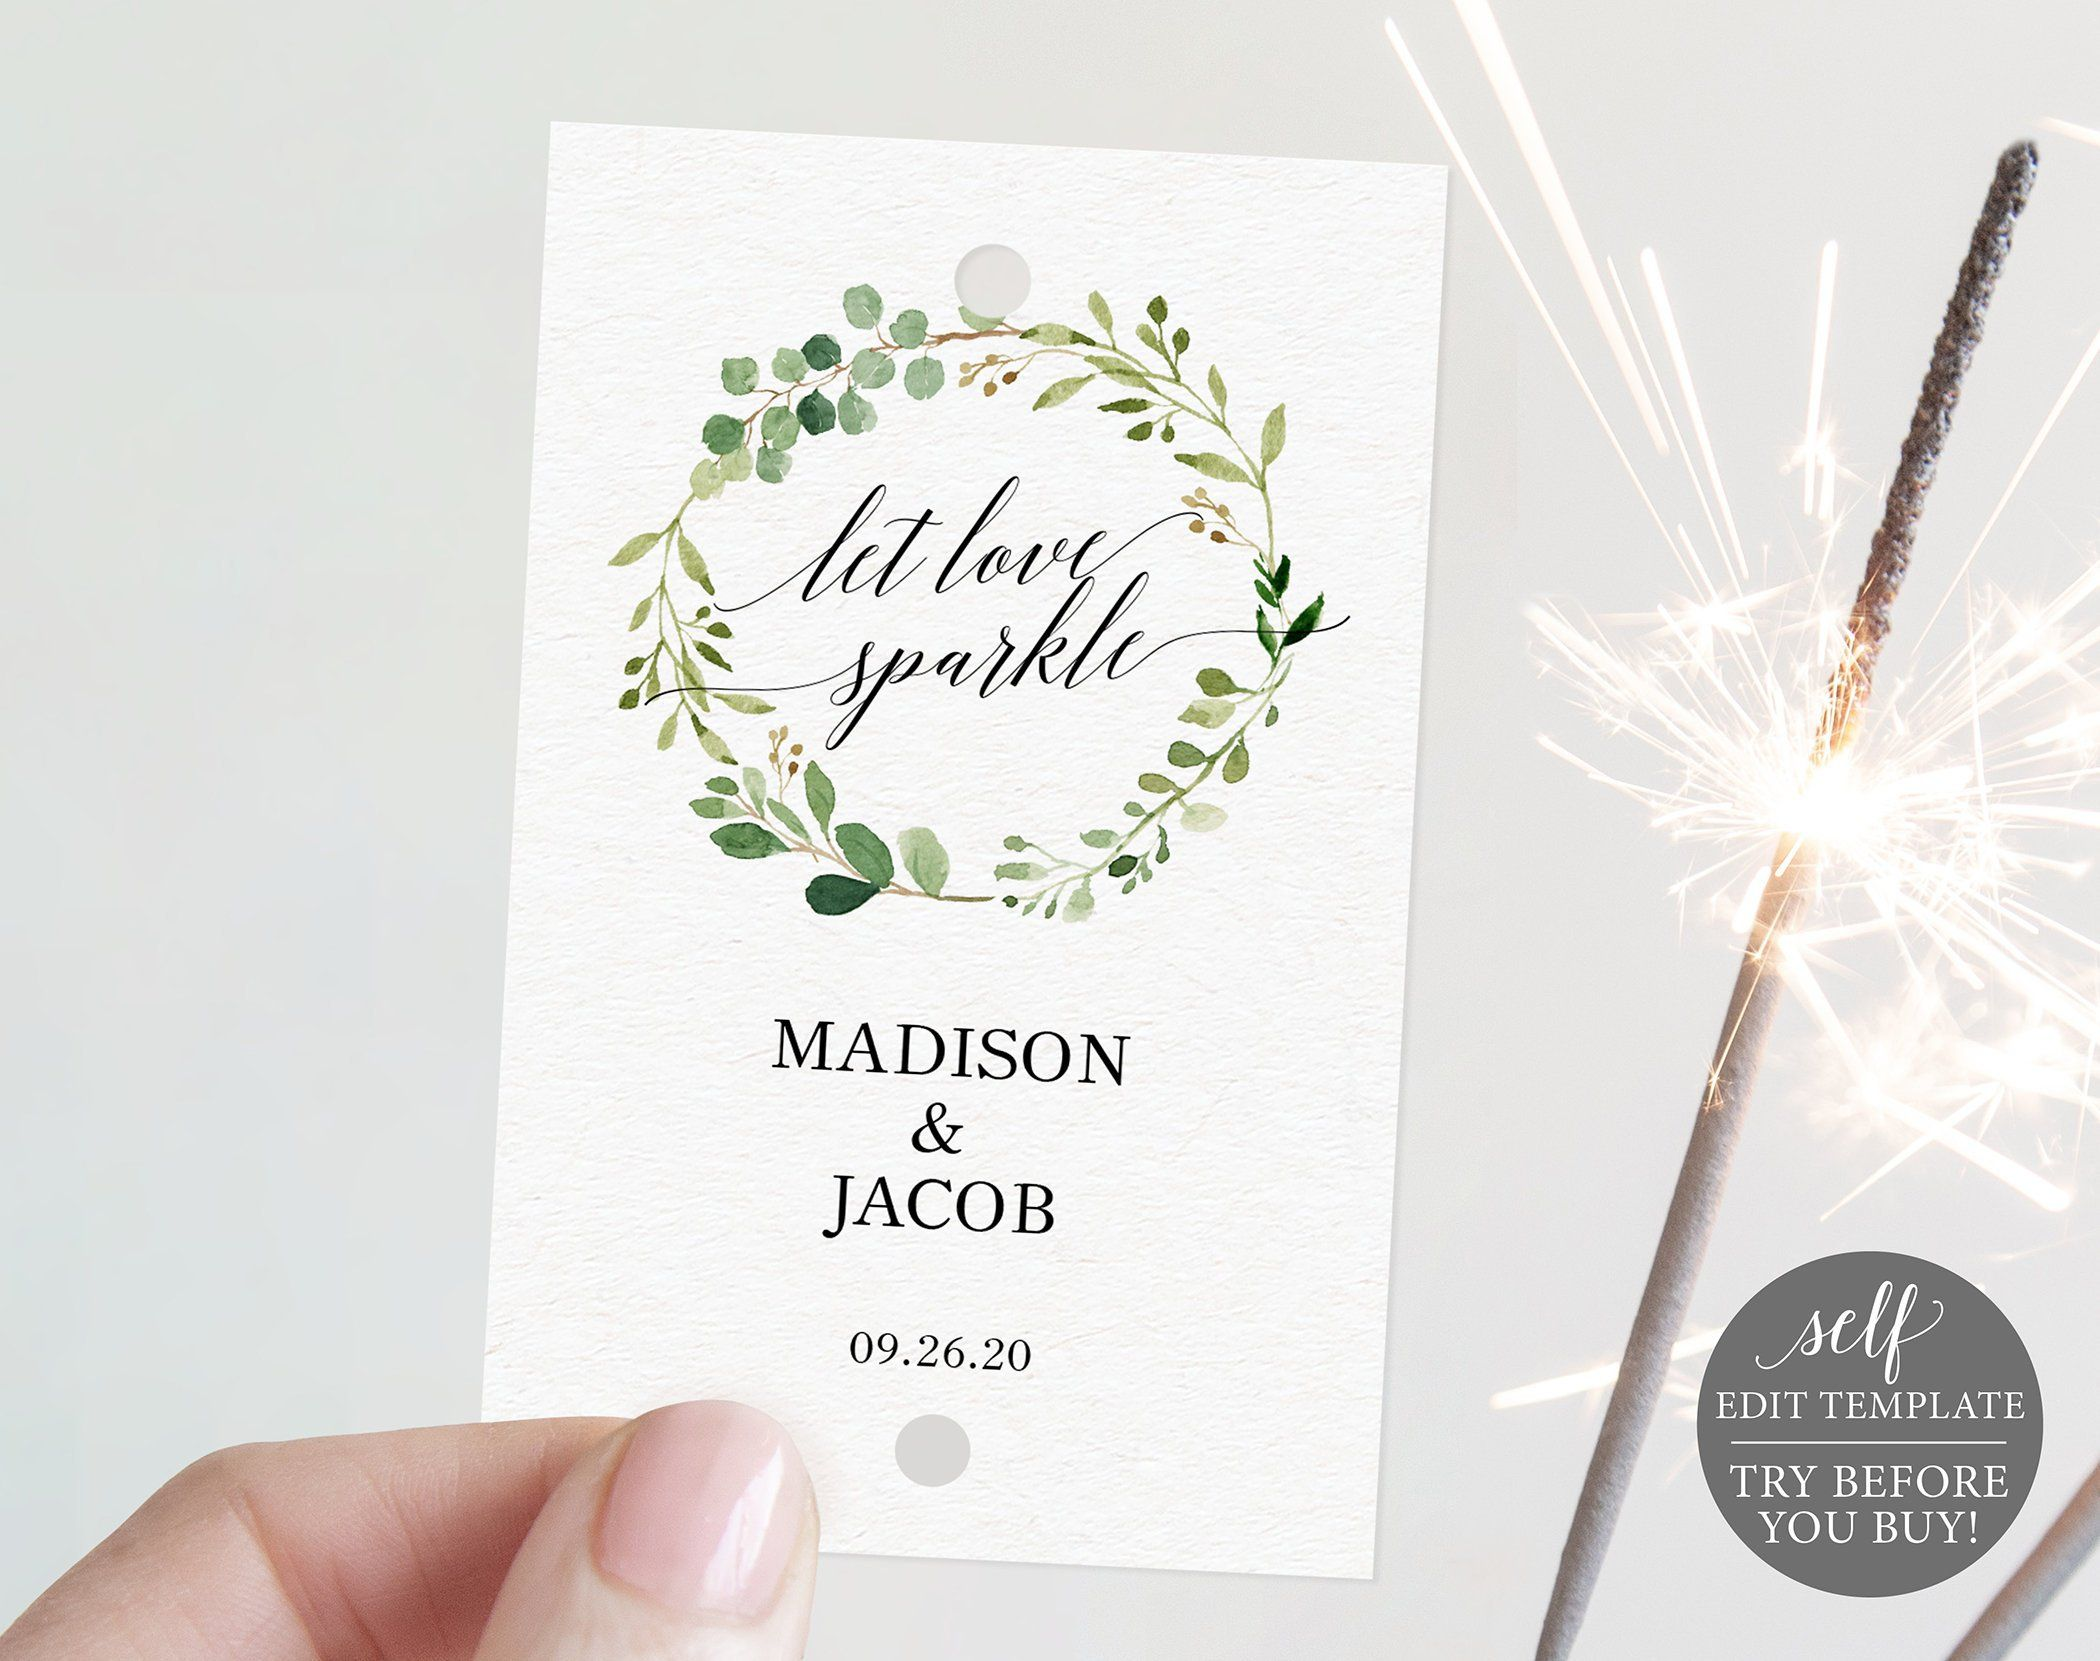 Sparkler Tag Template, Greenery, Editable Instant Download